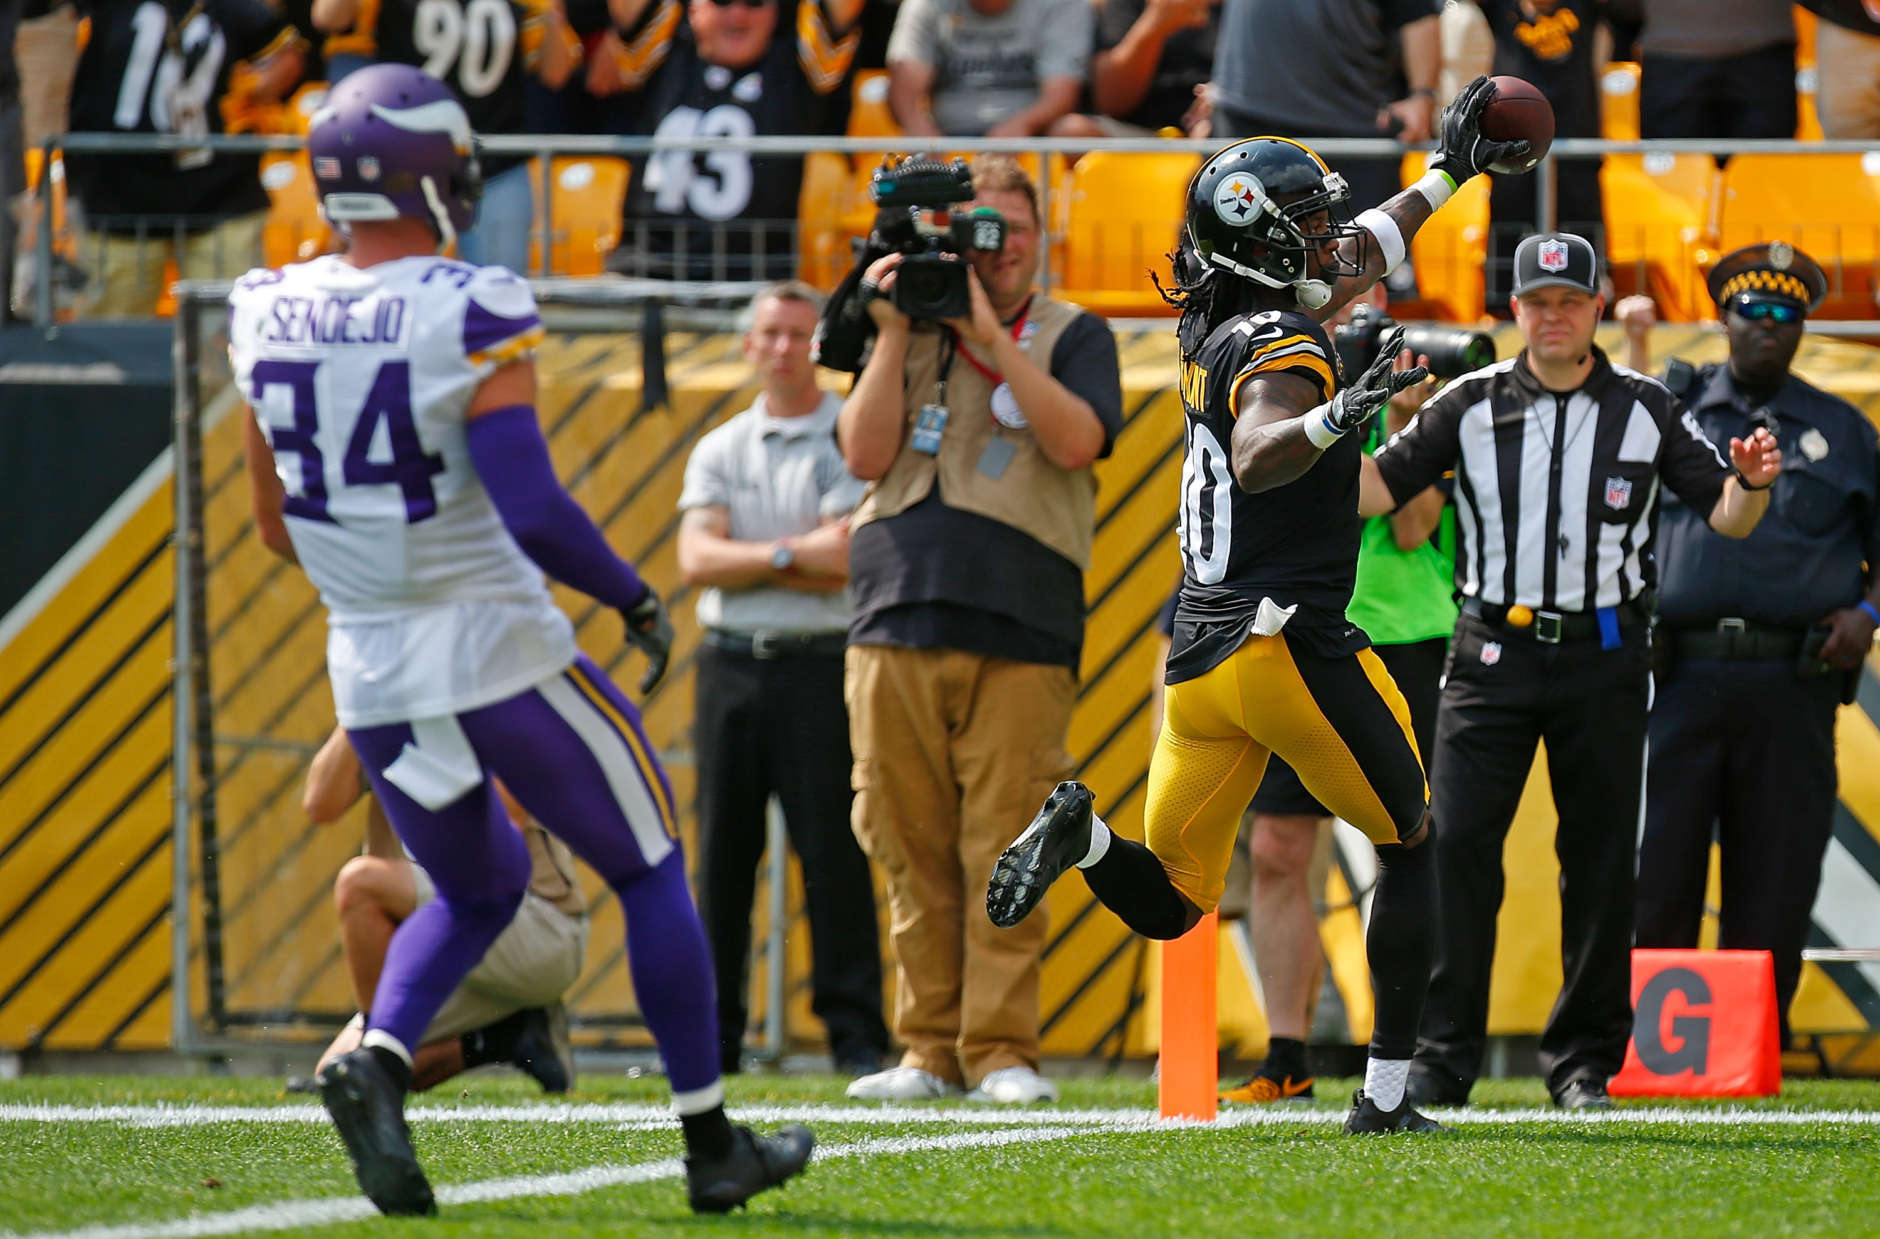 PITTSBURGH, PA - SEPTEMBER 17:  Martavis Bryant #10 of the Pittsburgh Steelers celebrates as he crosses the goal line for a 27-yard touchdown reception in the first quarter during the game against the Minnesota Vikings at Heinz Field on September 17, 2017 in Pittsburgh, Pennsylvania. (Photo by Justin K. Aller/Getty Images)